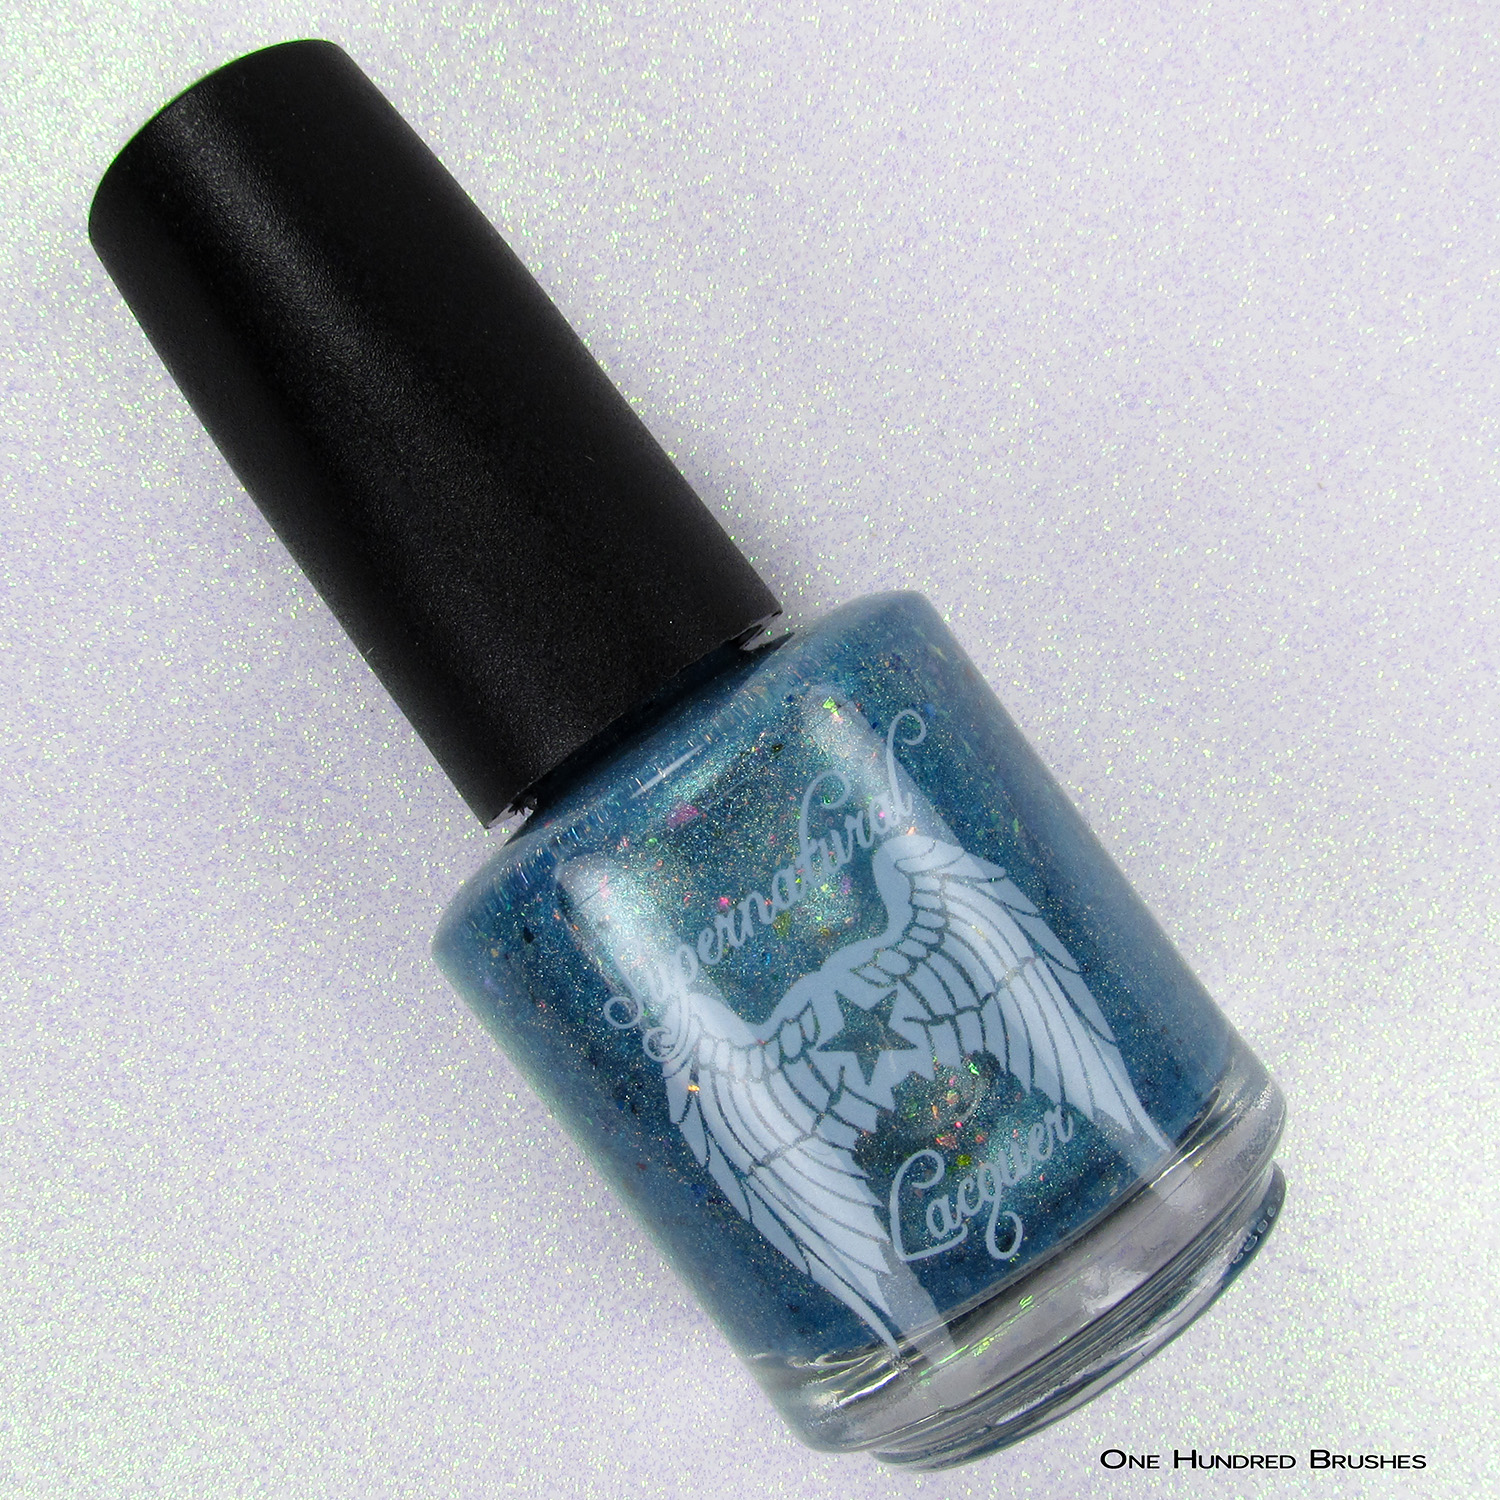 Everything's Shiny Cap'n! - Supernatural Lacquer - July HHC